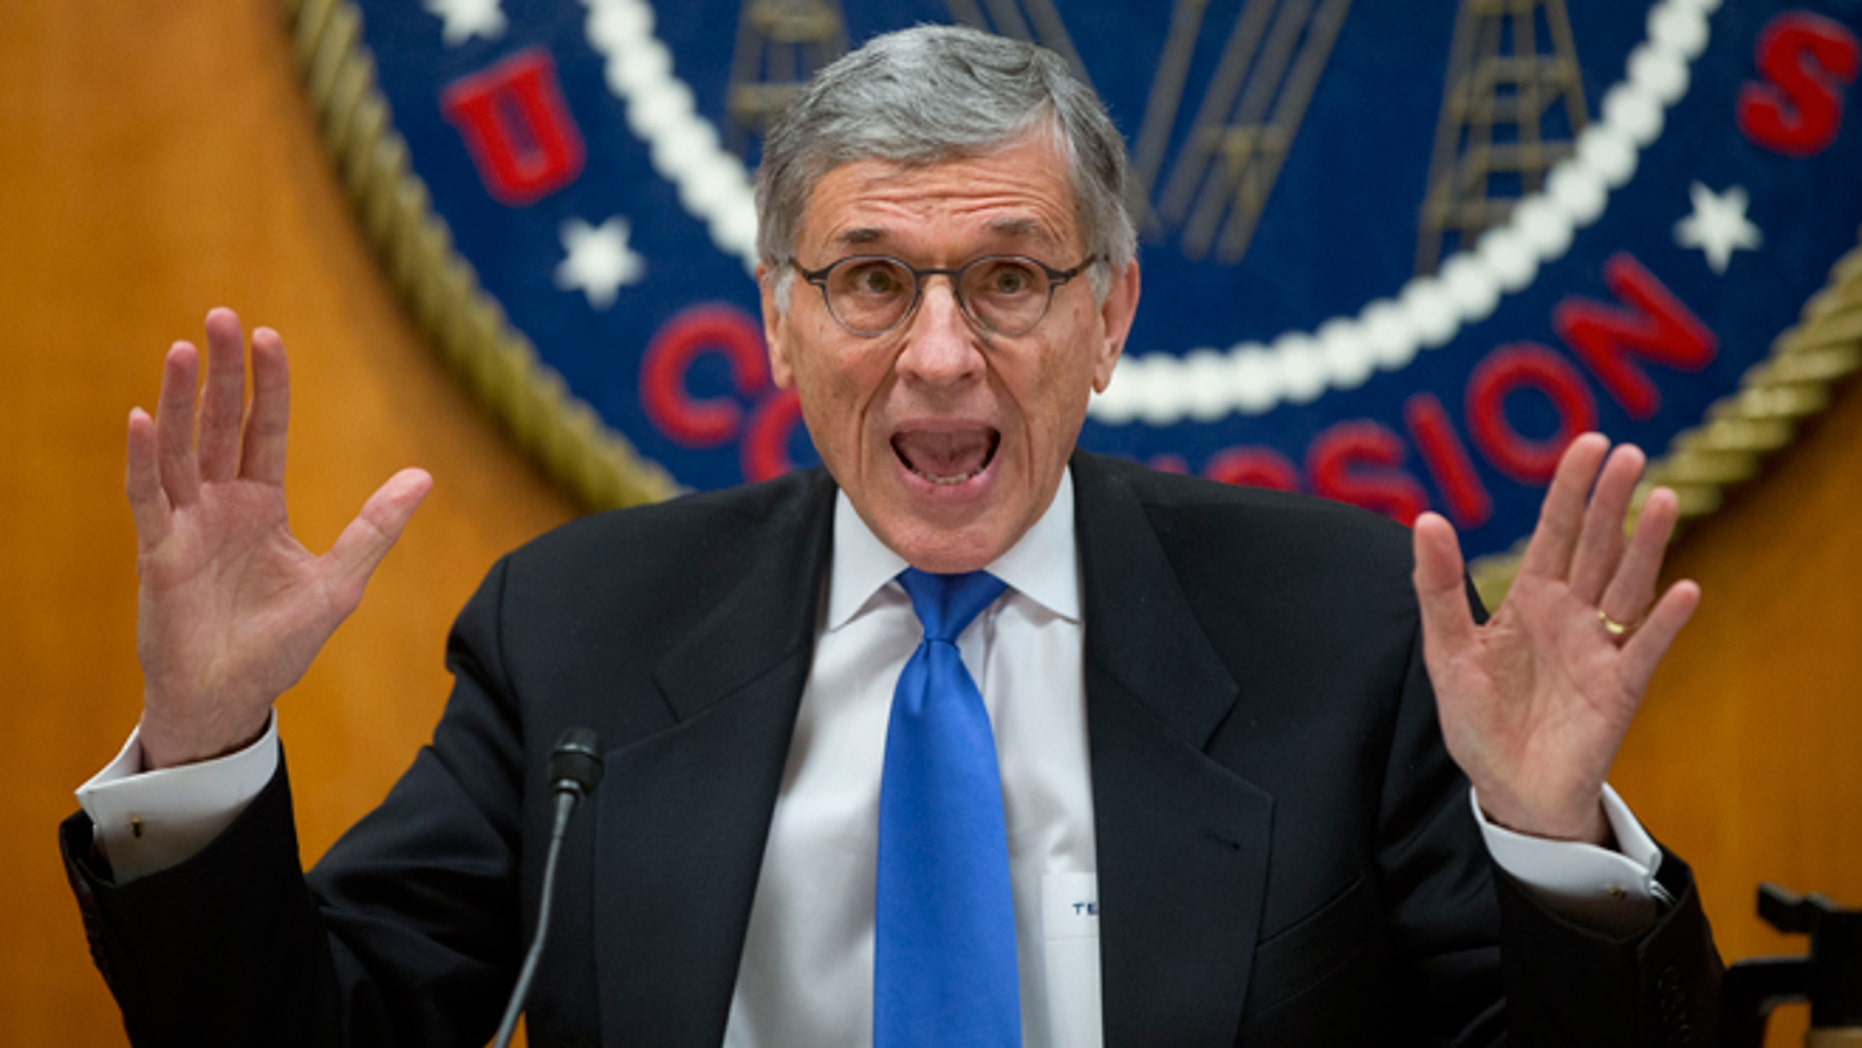 FILE -- Feb. 26, 2015: Federal Communications Commission (FCC) Chairman Tom Wheeler gestures near the end of a hearing for a vote on Net Neutrality at the FCC in Washington. Internet activists scored a major victory after the Federal Communications Commission agreed to rules that would ban service providers from creating Internet fast lanes.